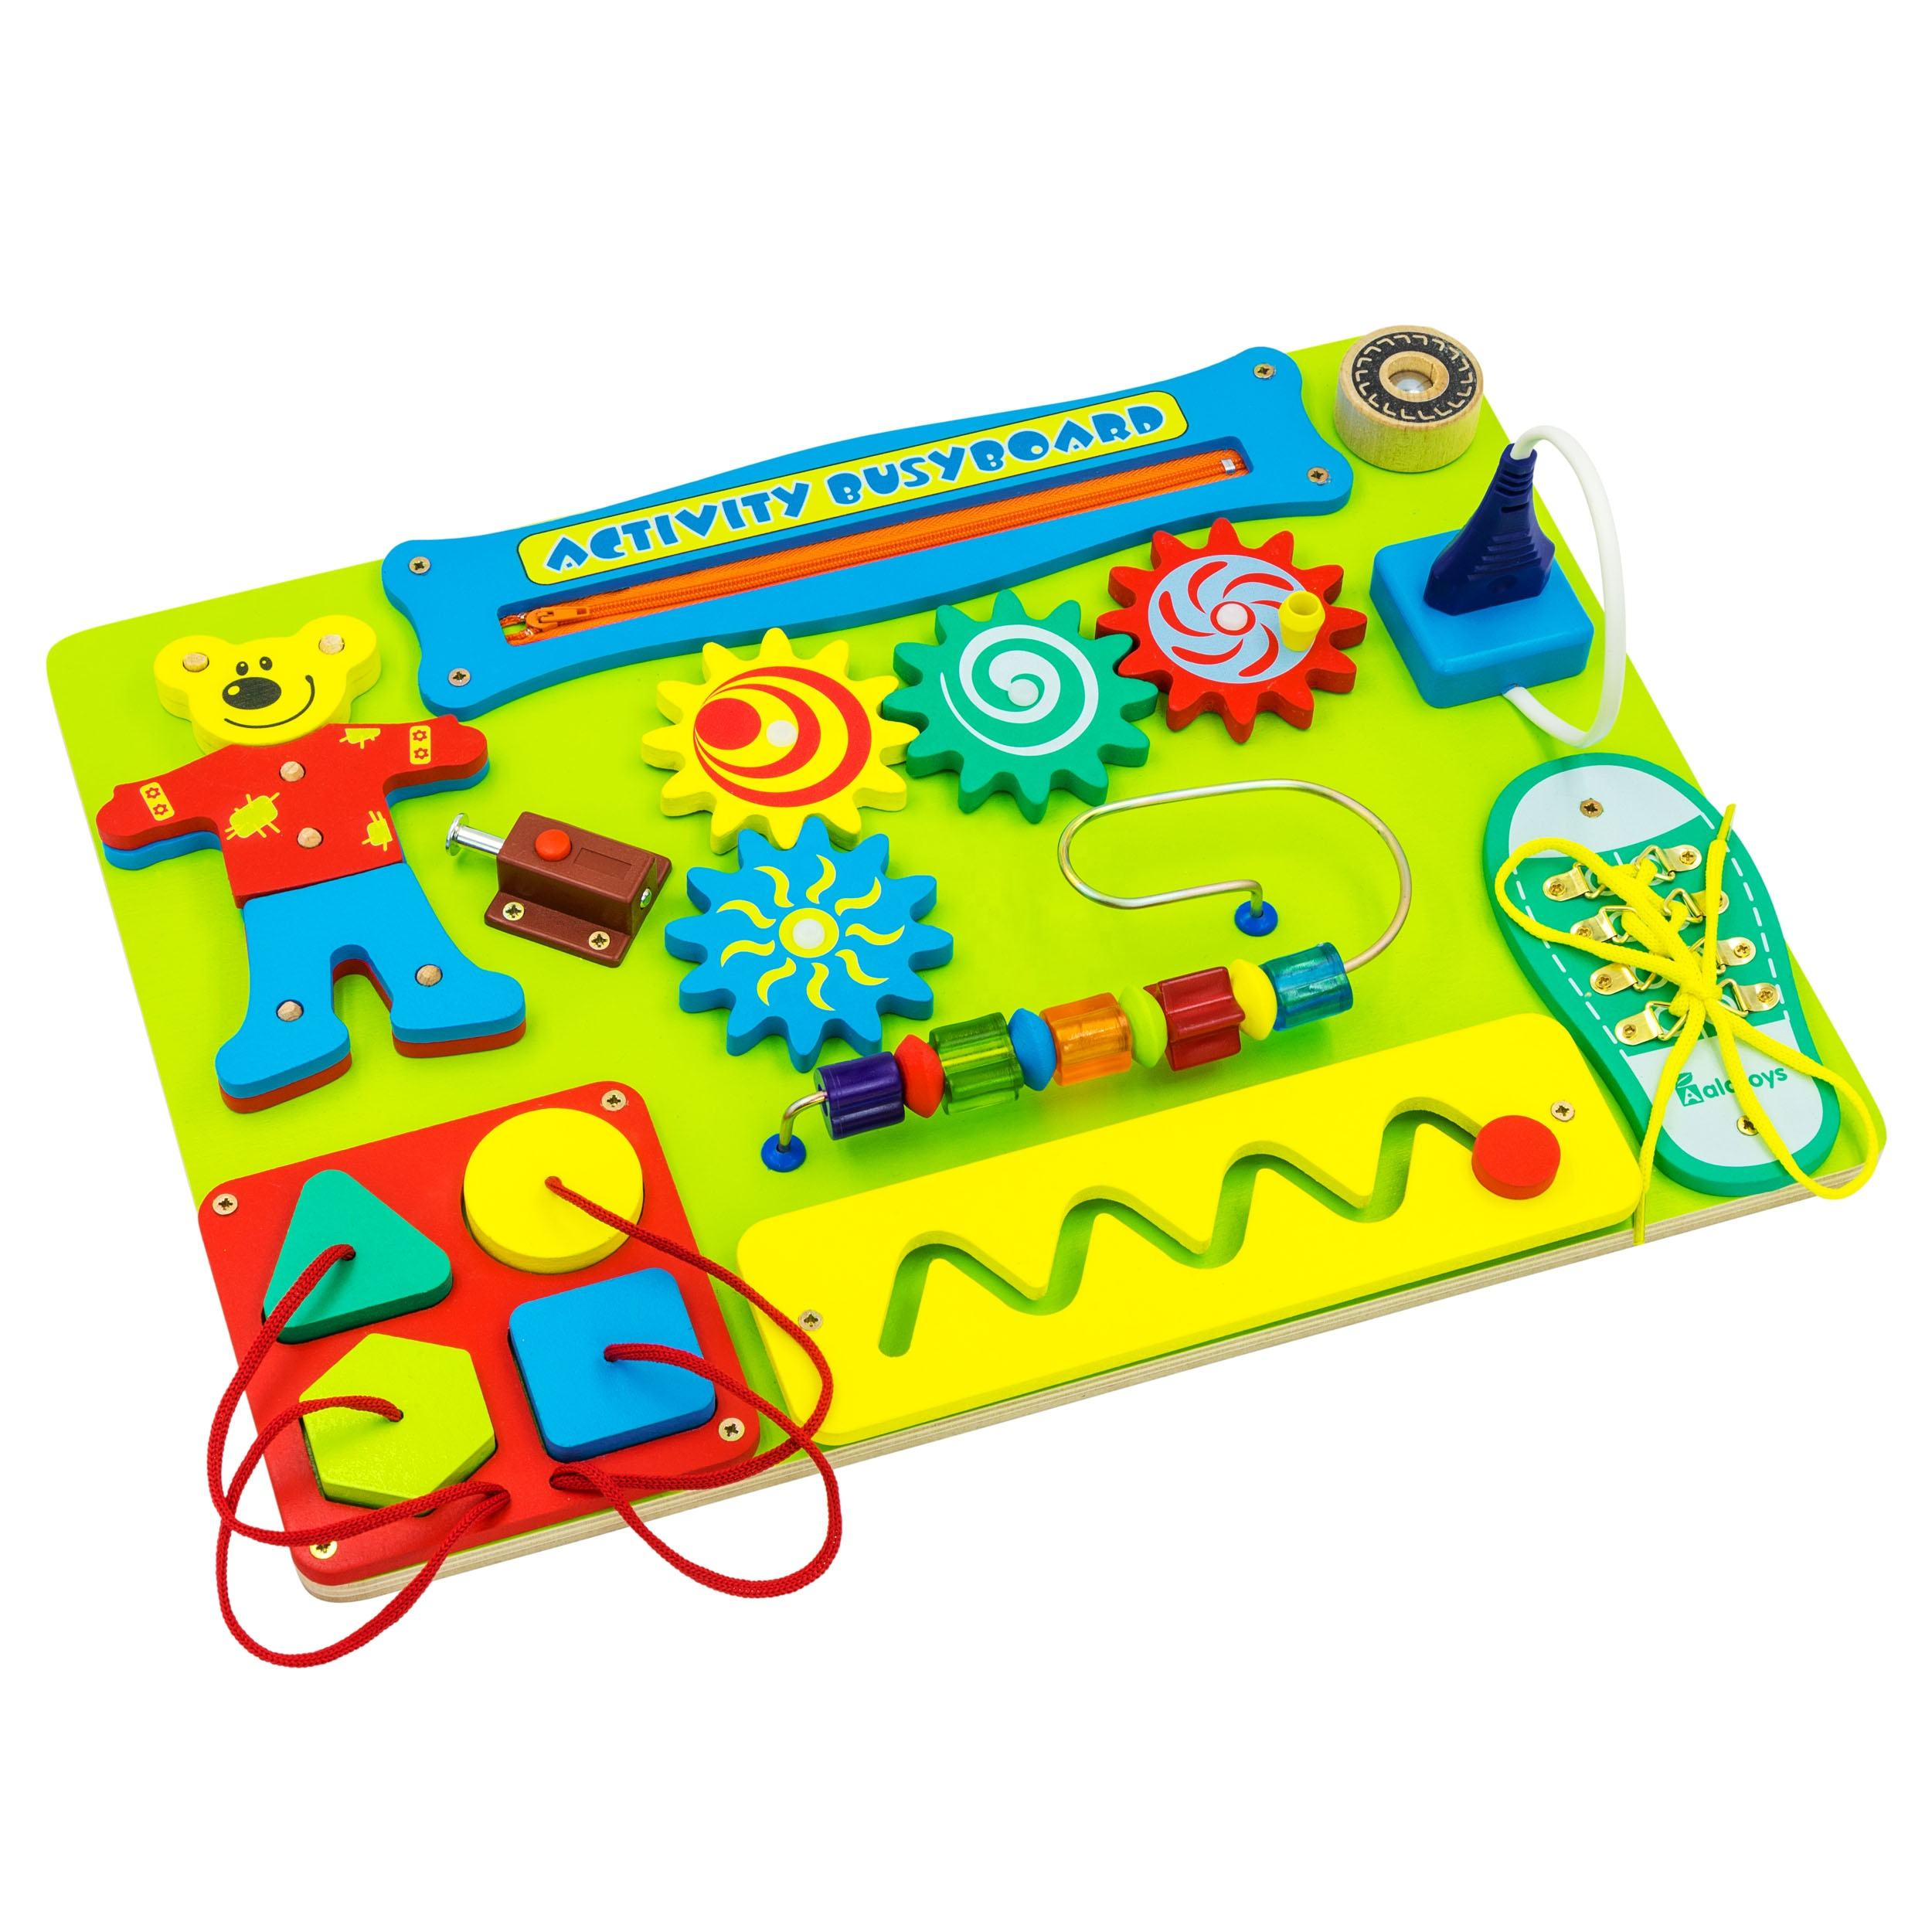 Alatoys Wooden Sensory Busy Board for 2 Year Old Toddlers